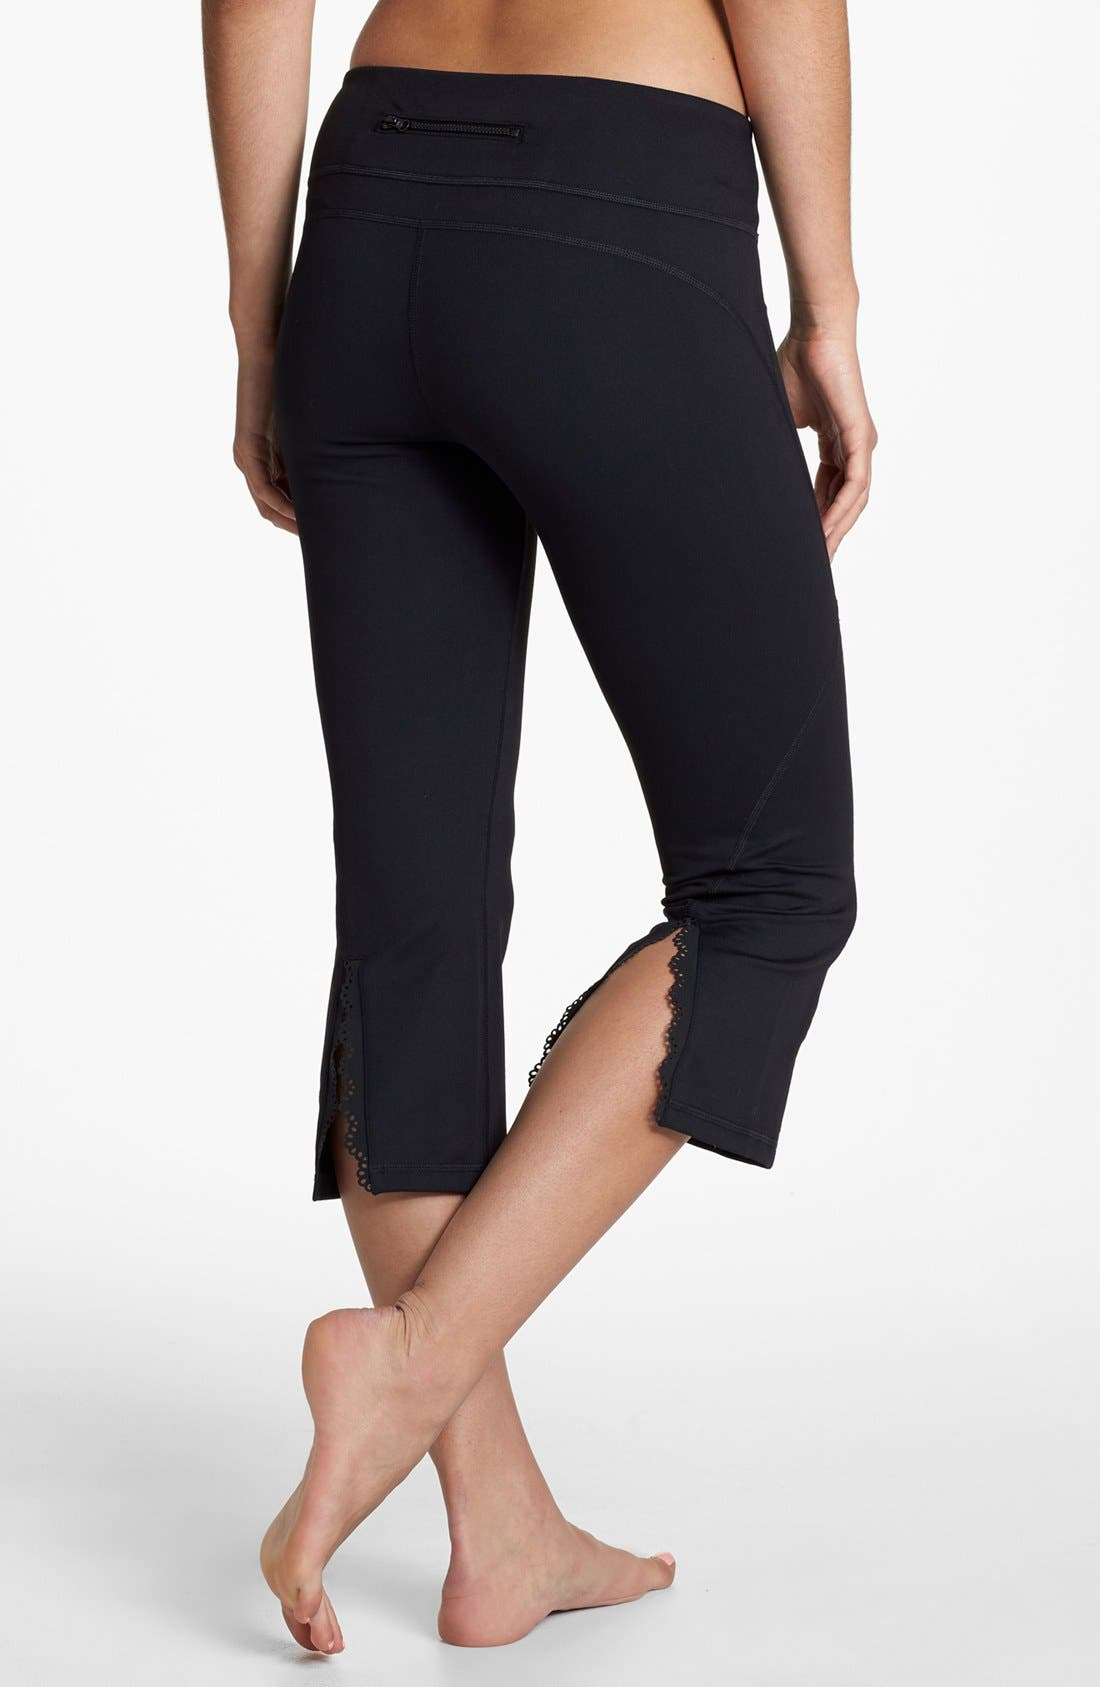 Alternate Image 1 Selected - Zella 'Hero' Capri Leggings (Online Only)